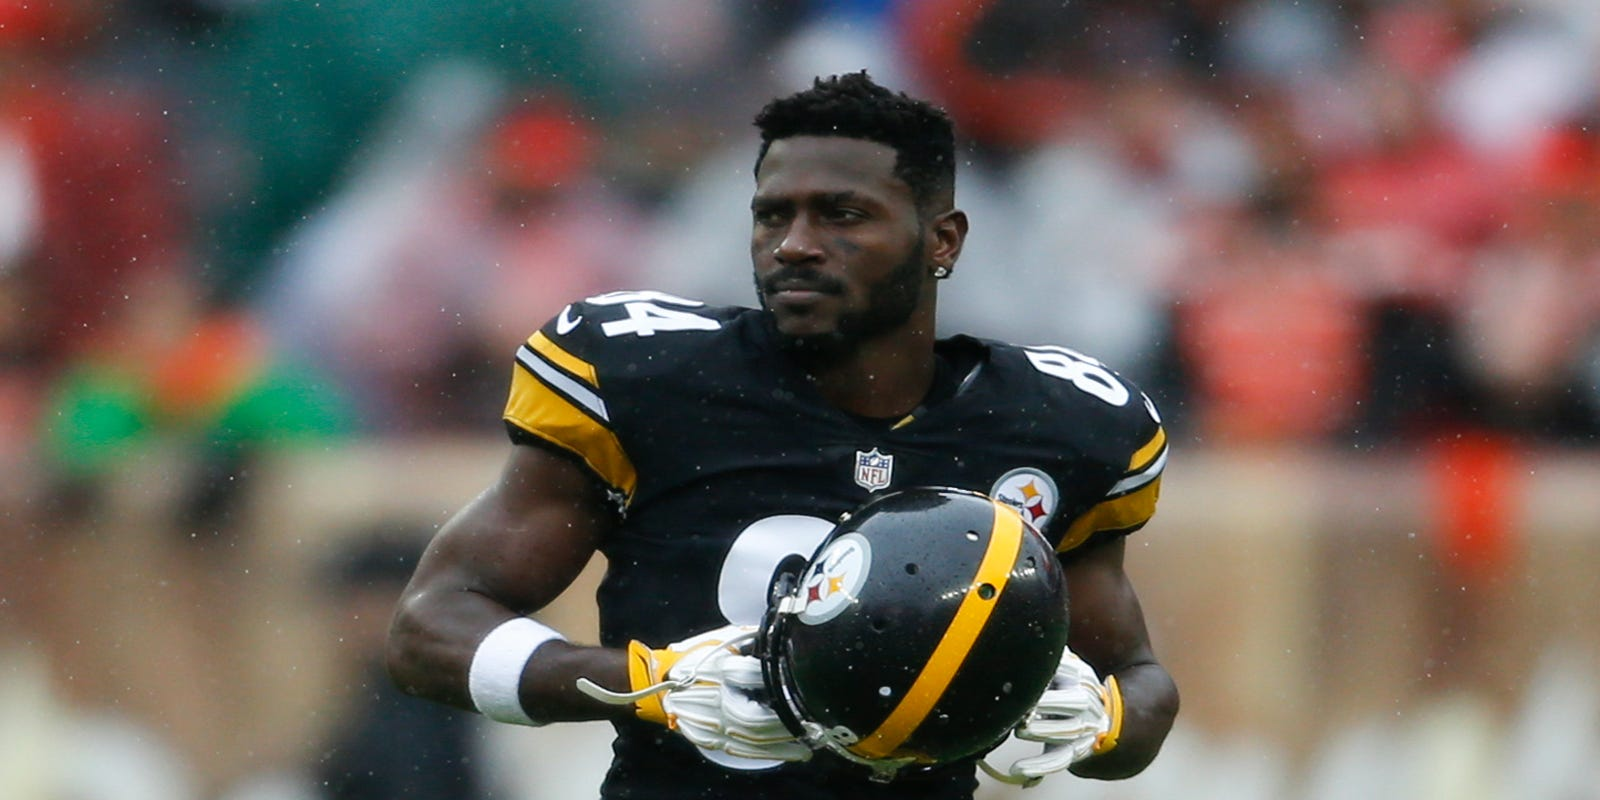 Antonio Brown Absence From Steelers Practice May Be Unexcused